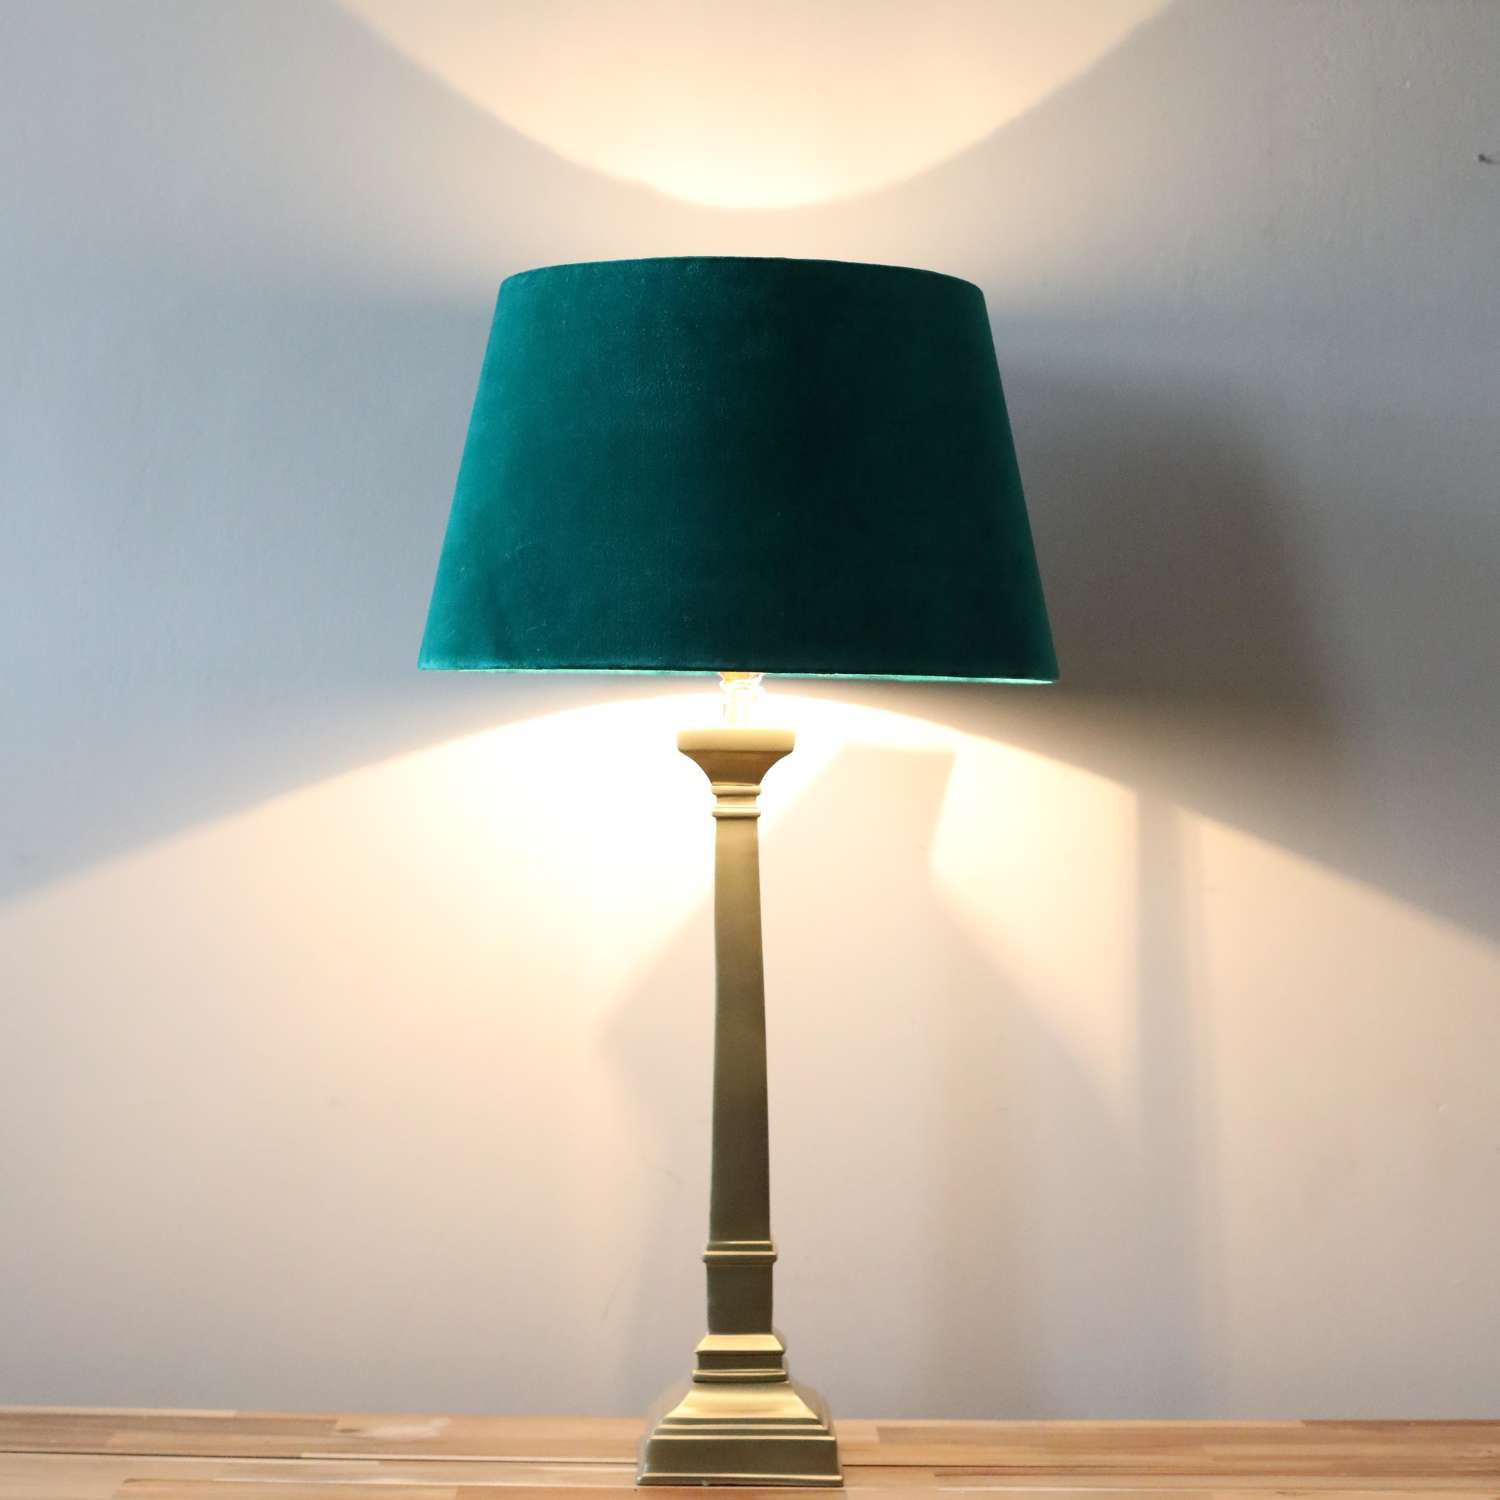 Brass Effect Table Lamp Complete with Green Velvet Shade.